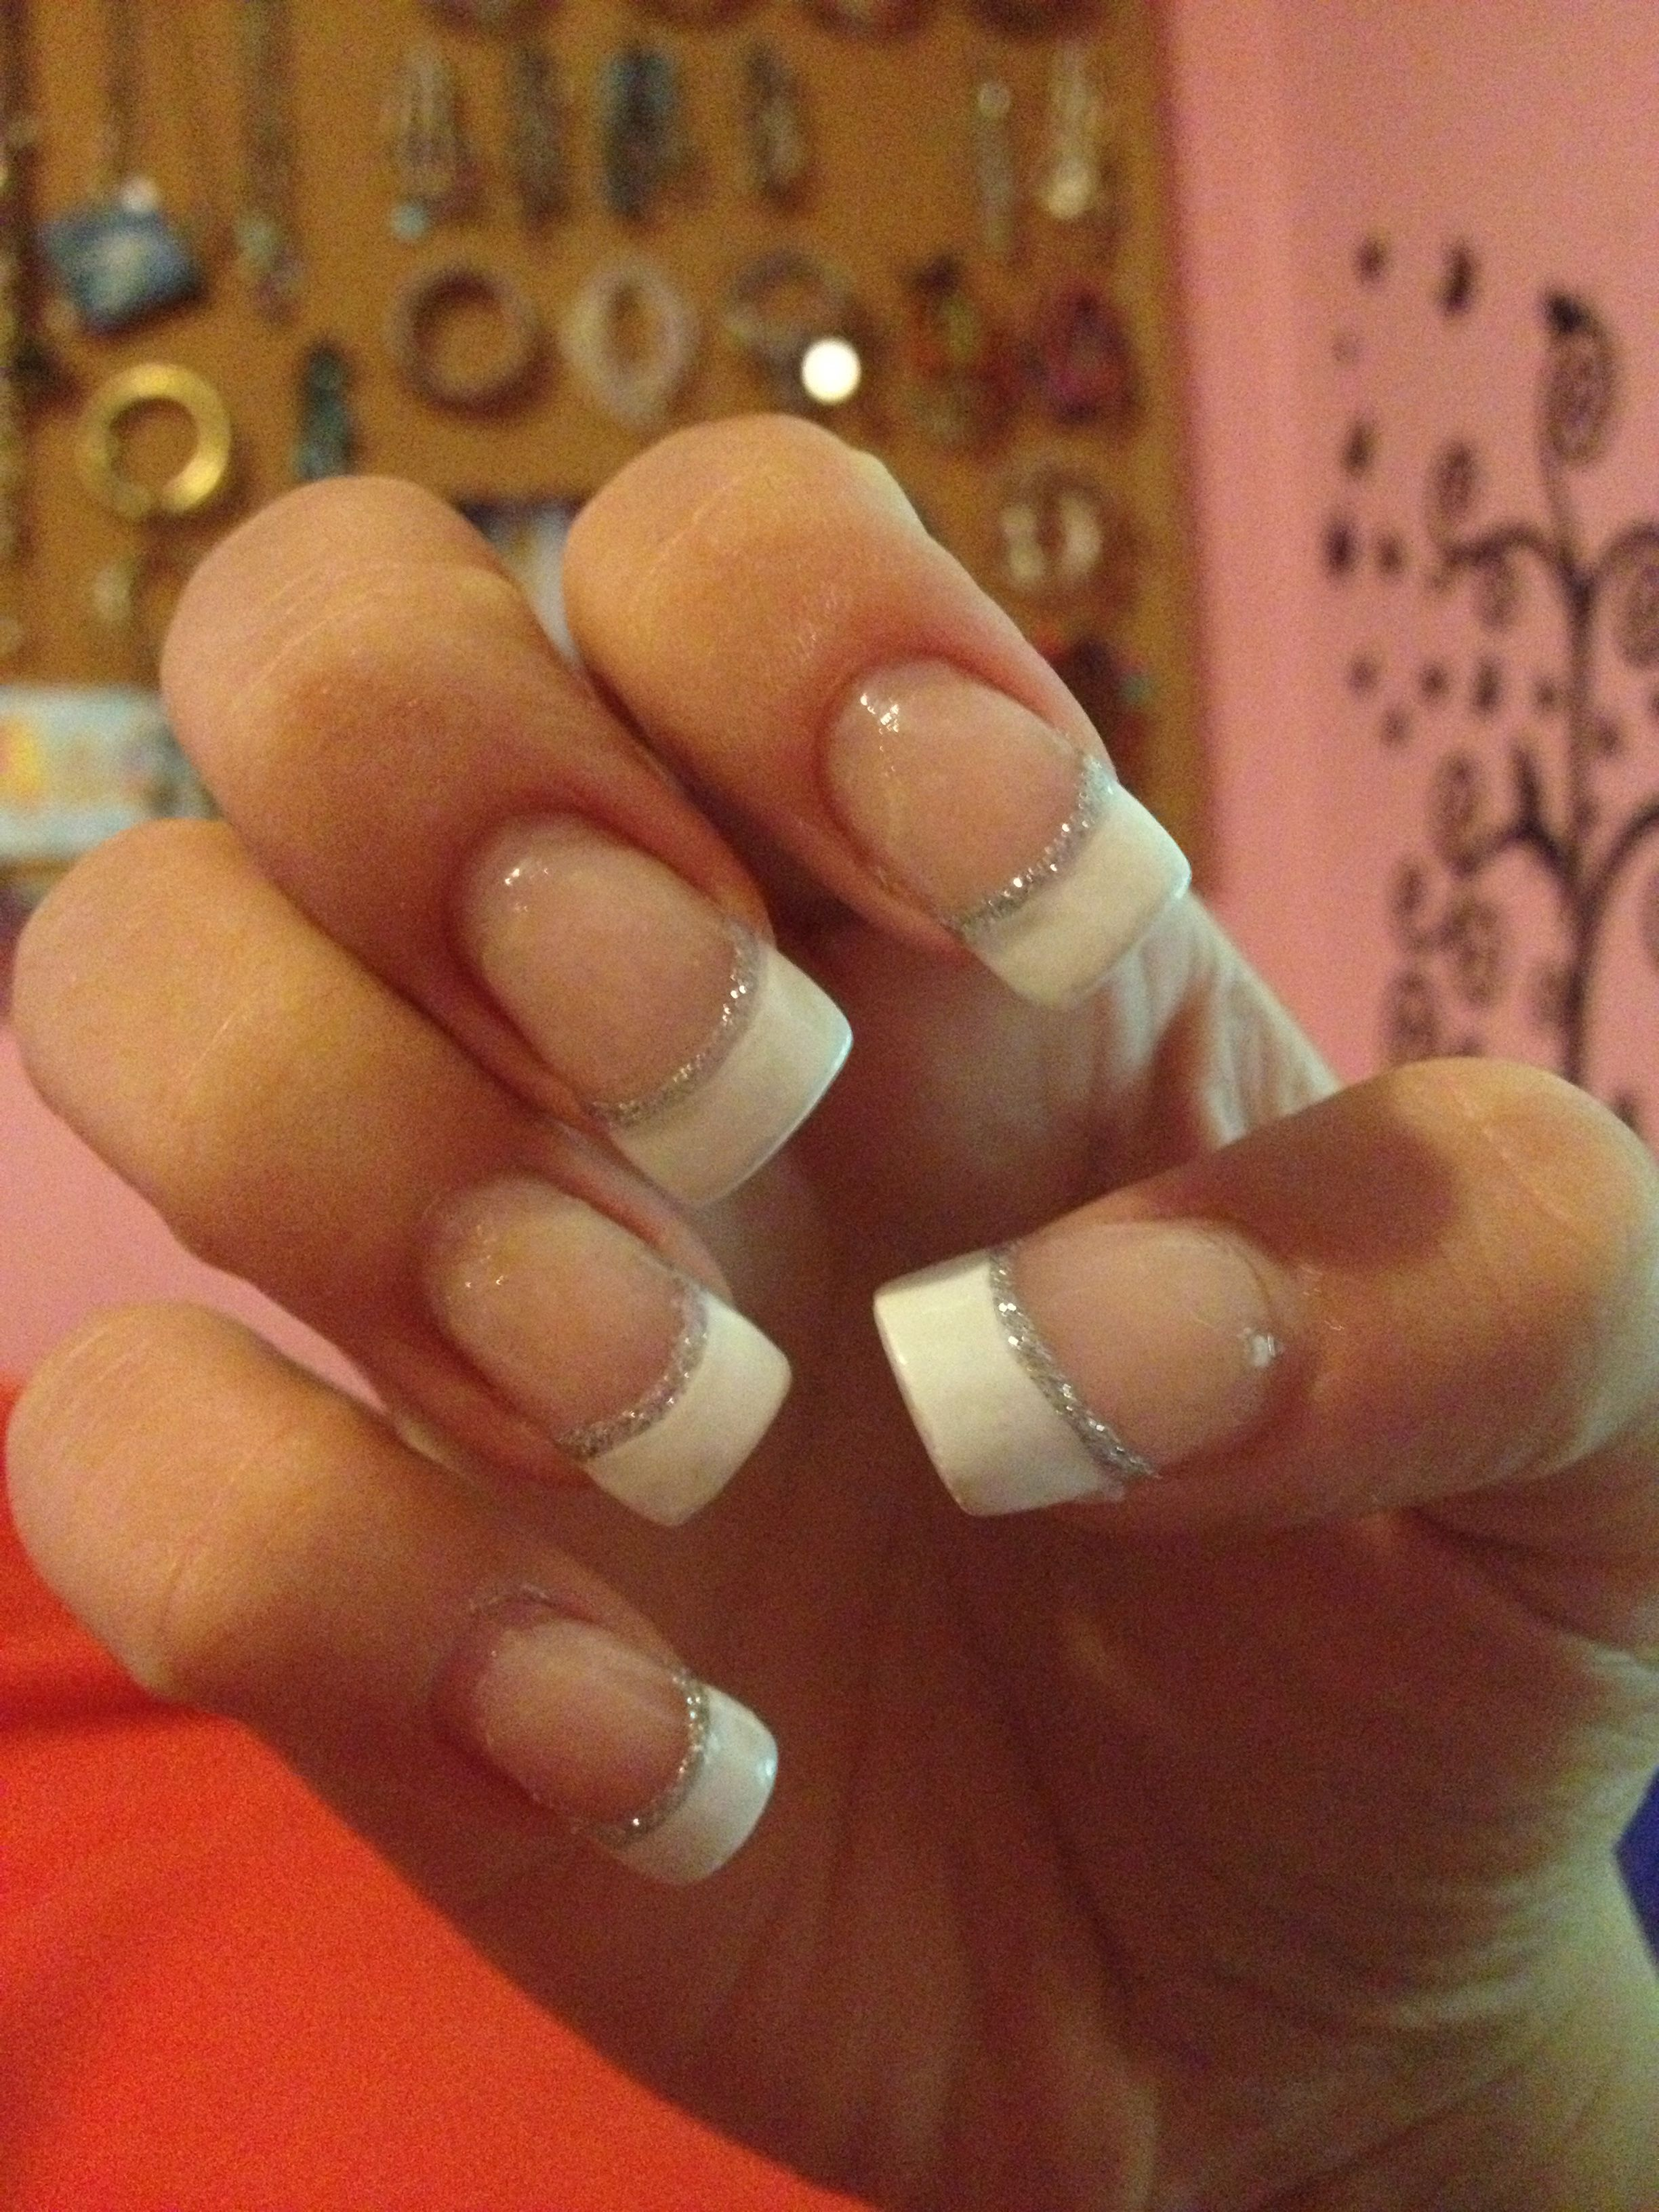 Pattern nail art designs fancy nail art for prom simple nail art lines - Find This Pin And More On Nail Designs By Me